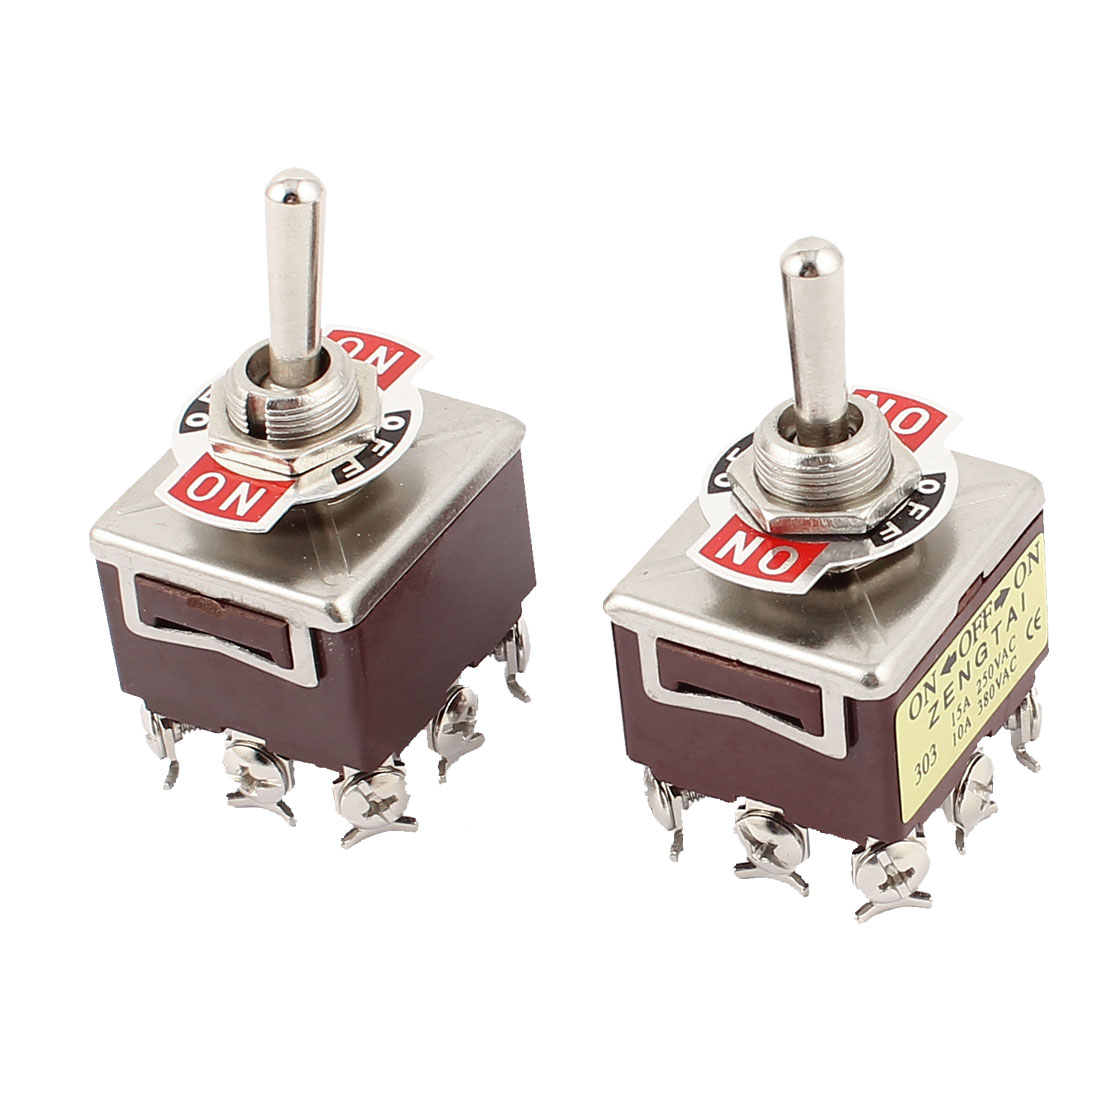 2 Pcs AC 250V 15A 380V 10A 9 Screw Terminals ON-OFF-ON 3 Position 3PDT Toggle Switch